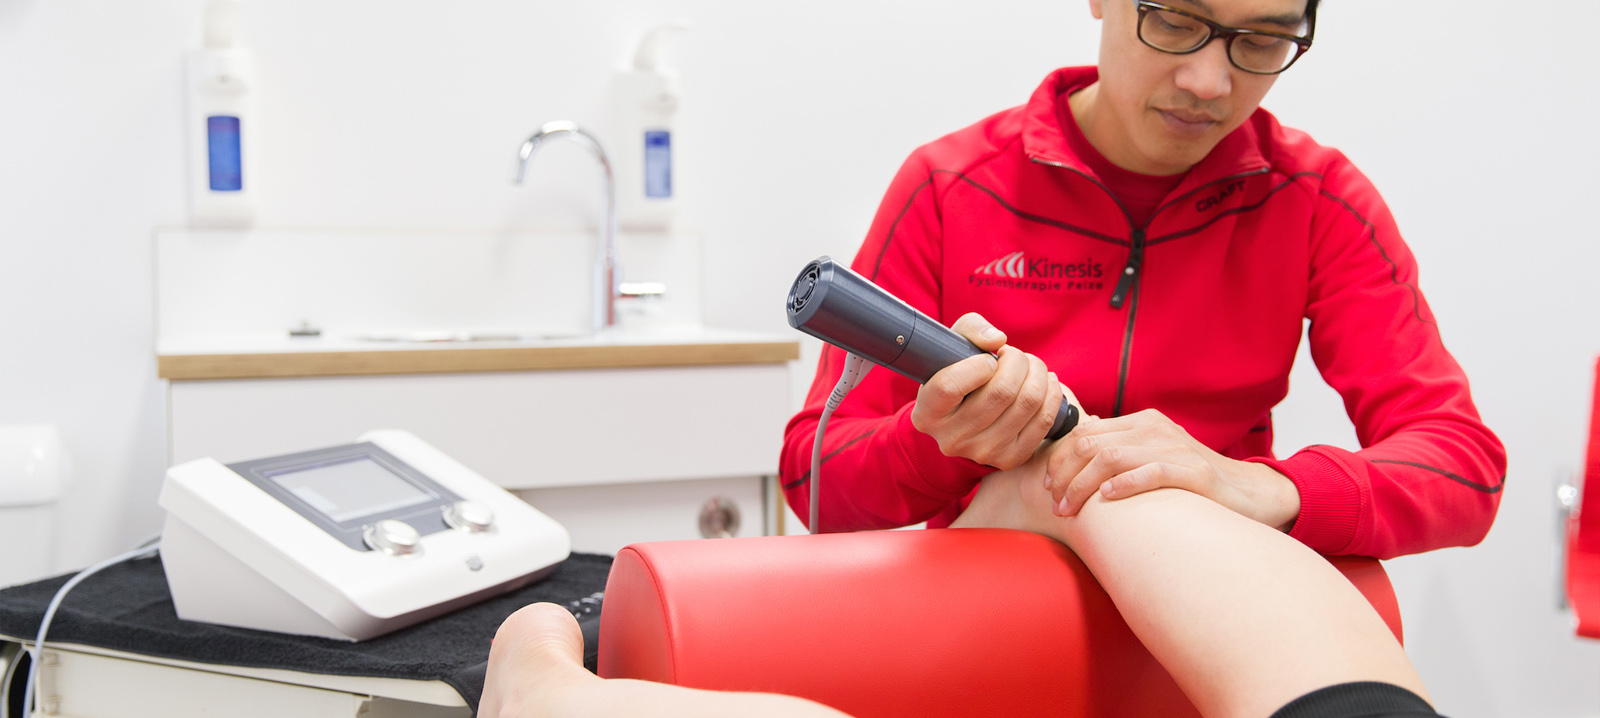 Over shockwave therapie bij Podozorg Peize